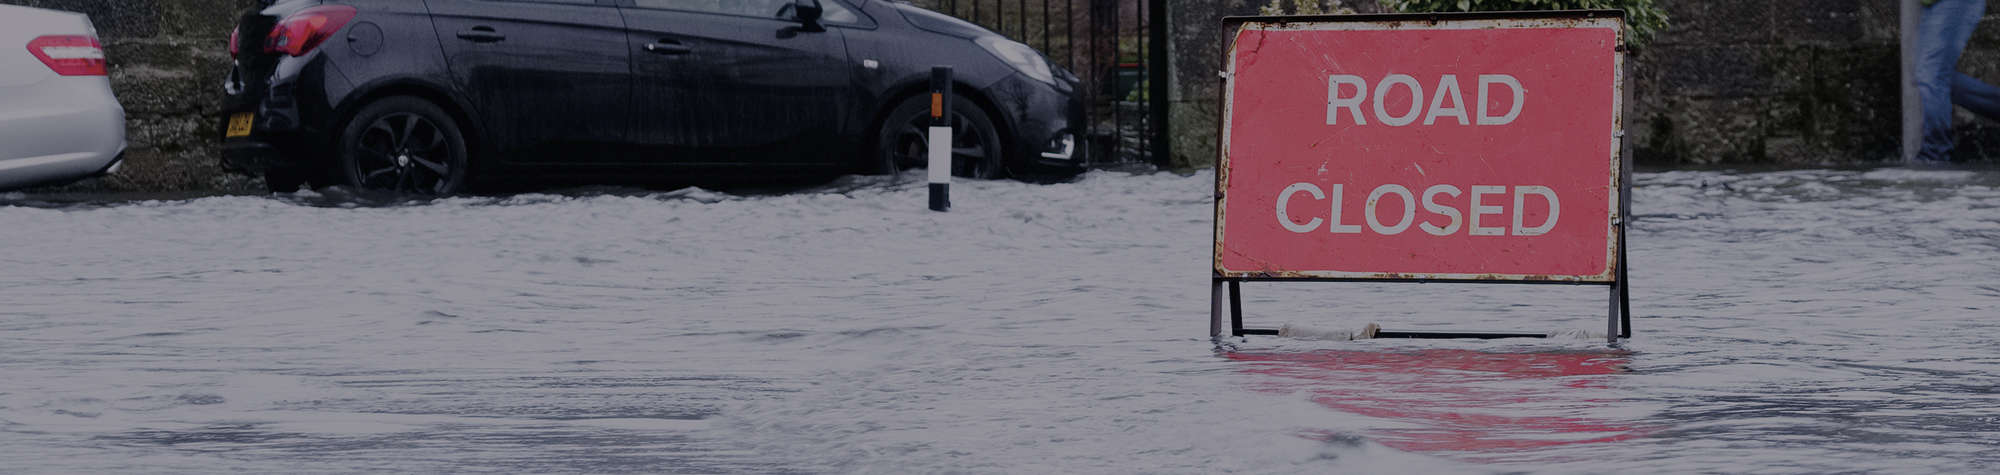 How To Protect Your Business Against Flooding